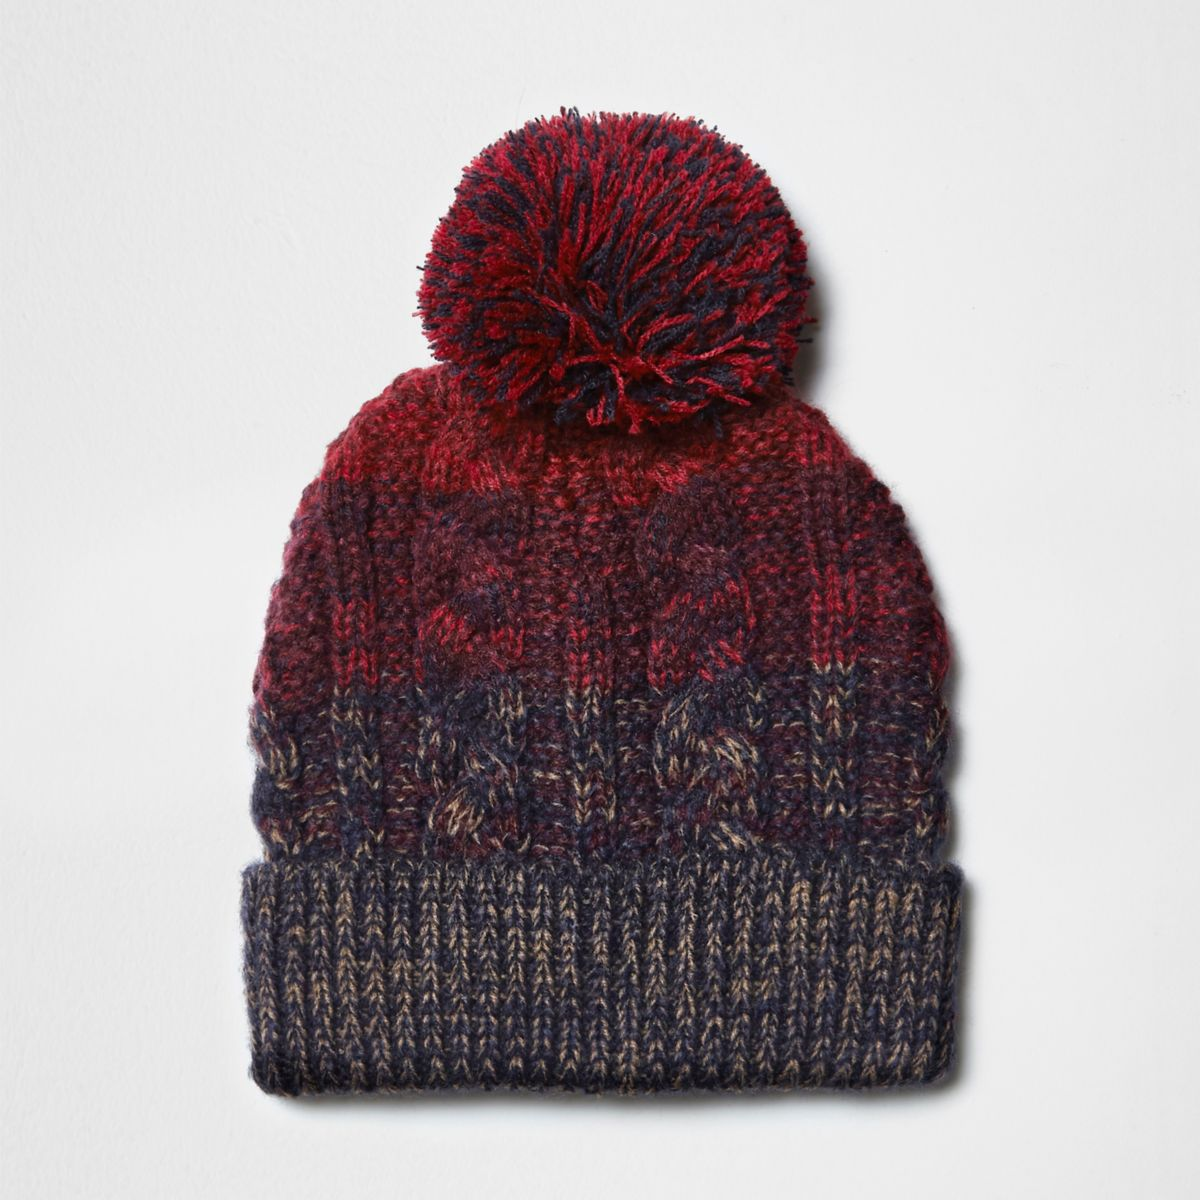 Red and navy cable knit pom pom beanie hat